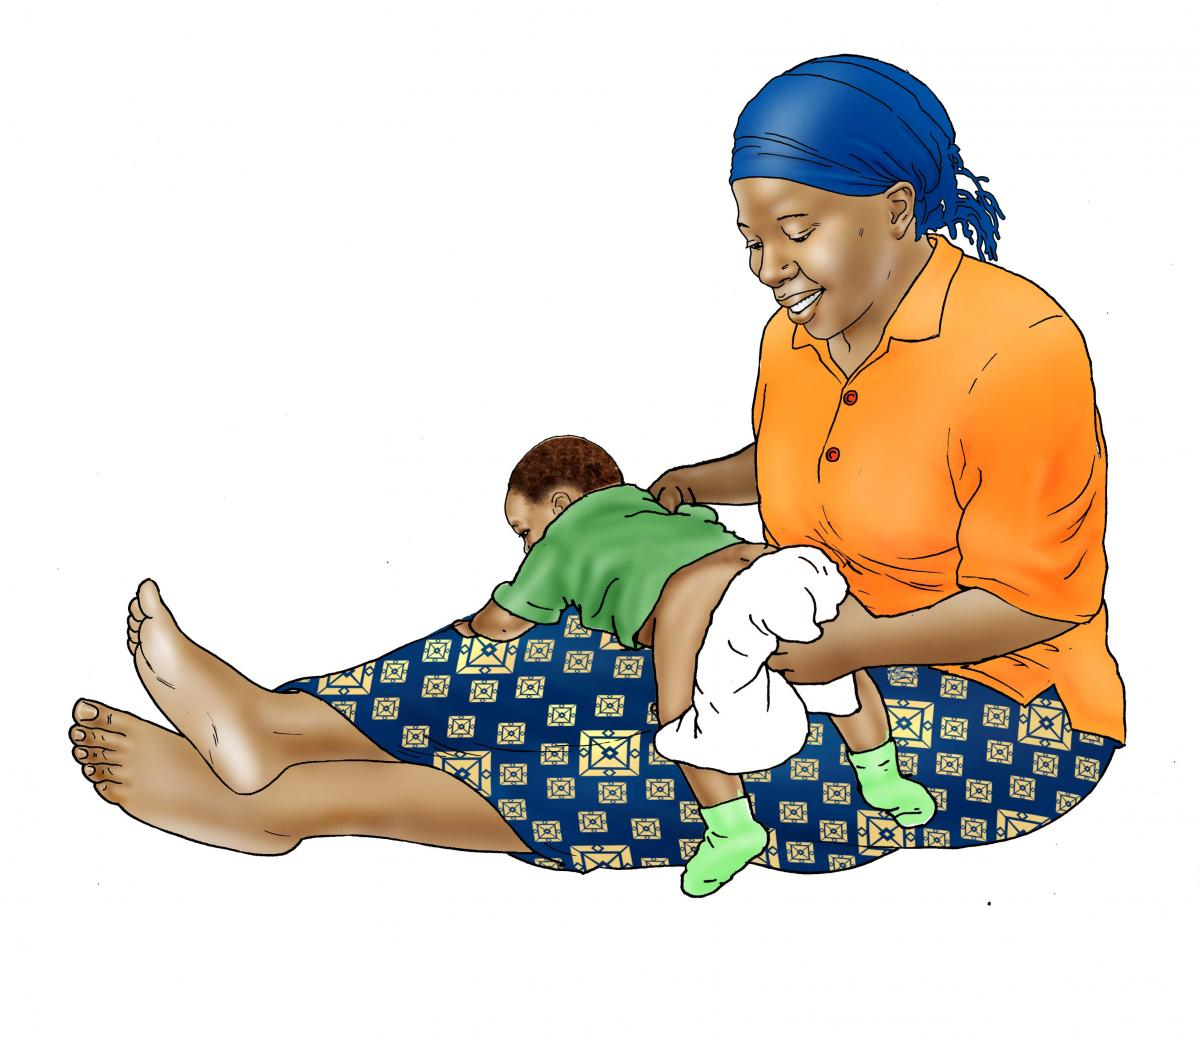 Hygiene - Mother washing baby's bottom - 03 - Non-country specific